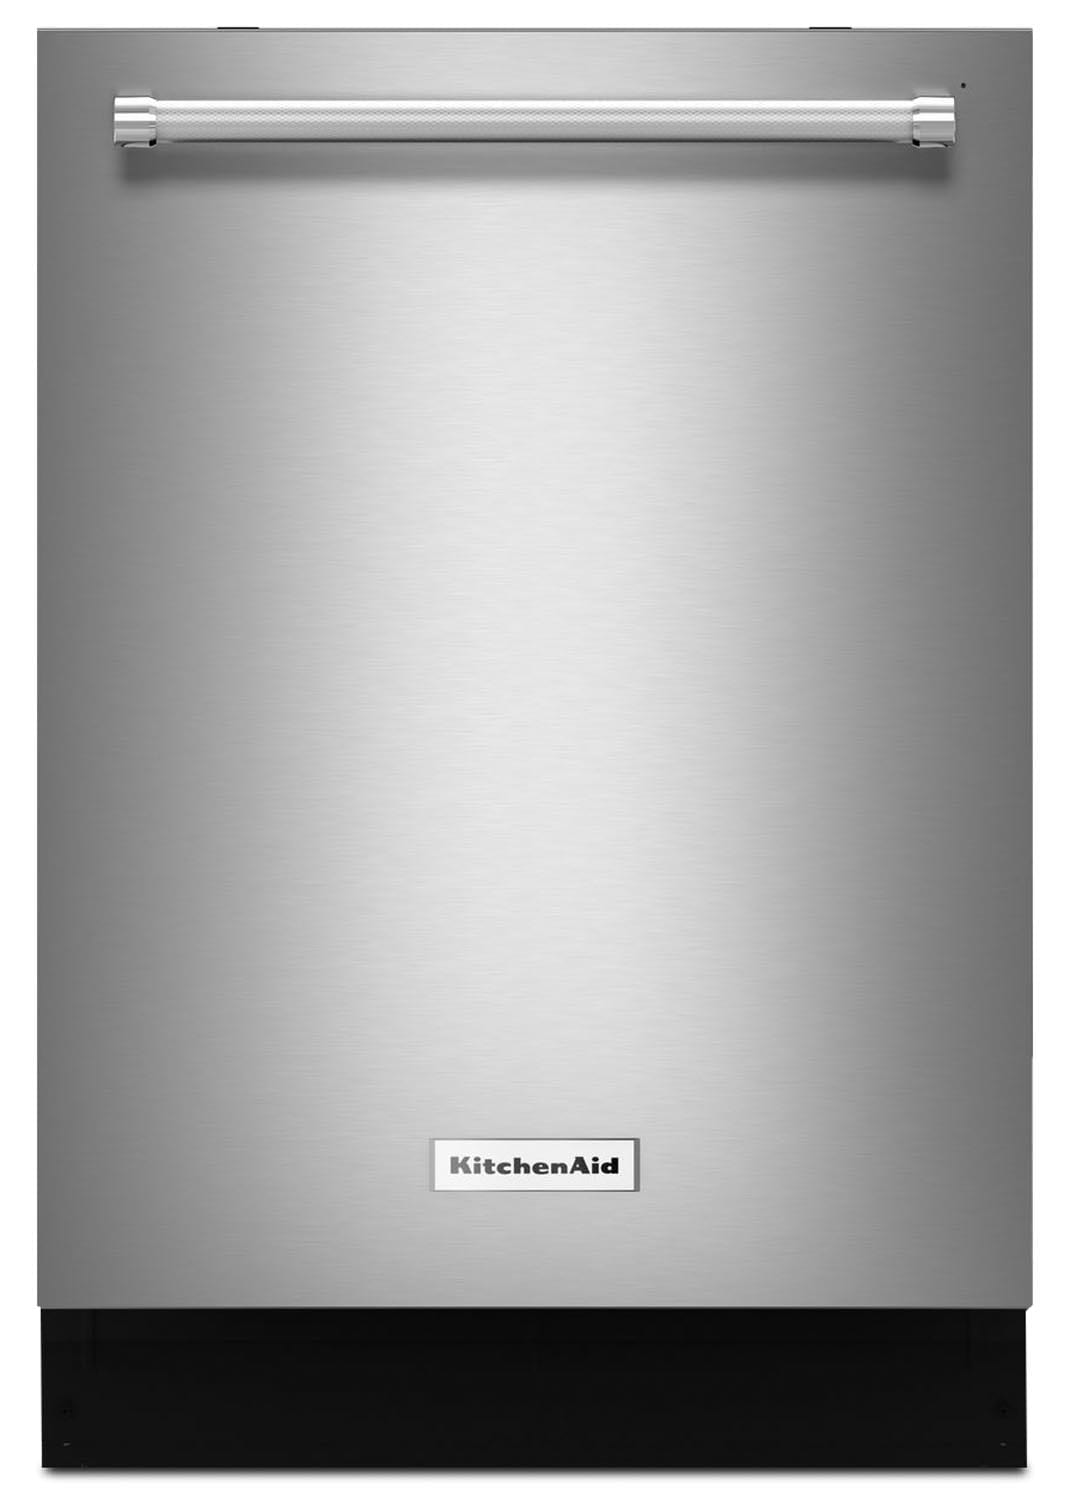 "Clean-Up - KitchenAid Stainless Steel 24"" Dishwasher - KDTM704ESS"